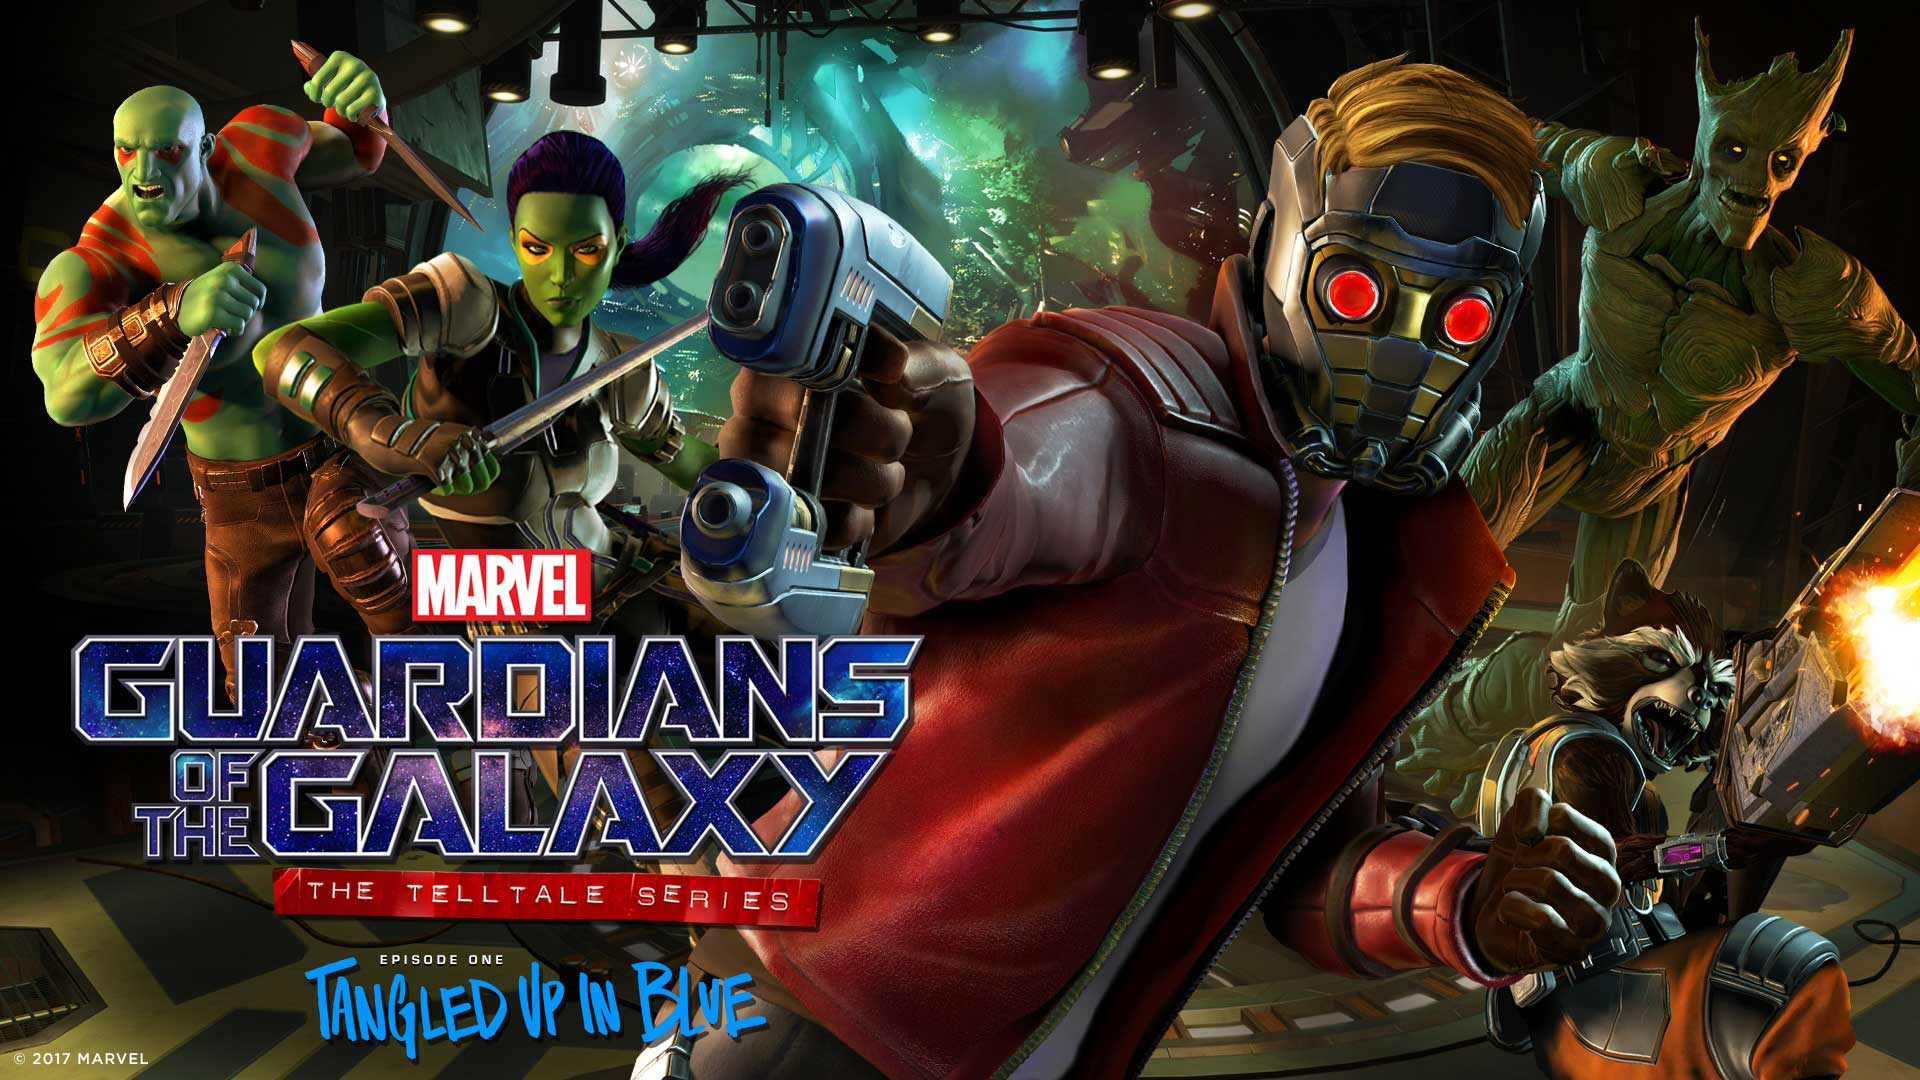 Guardians of The Galaxy: The Telltale Series, Already on Sale Its First Episode in Google Play